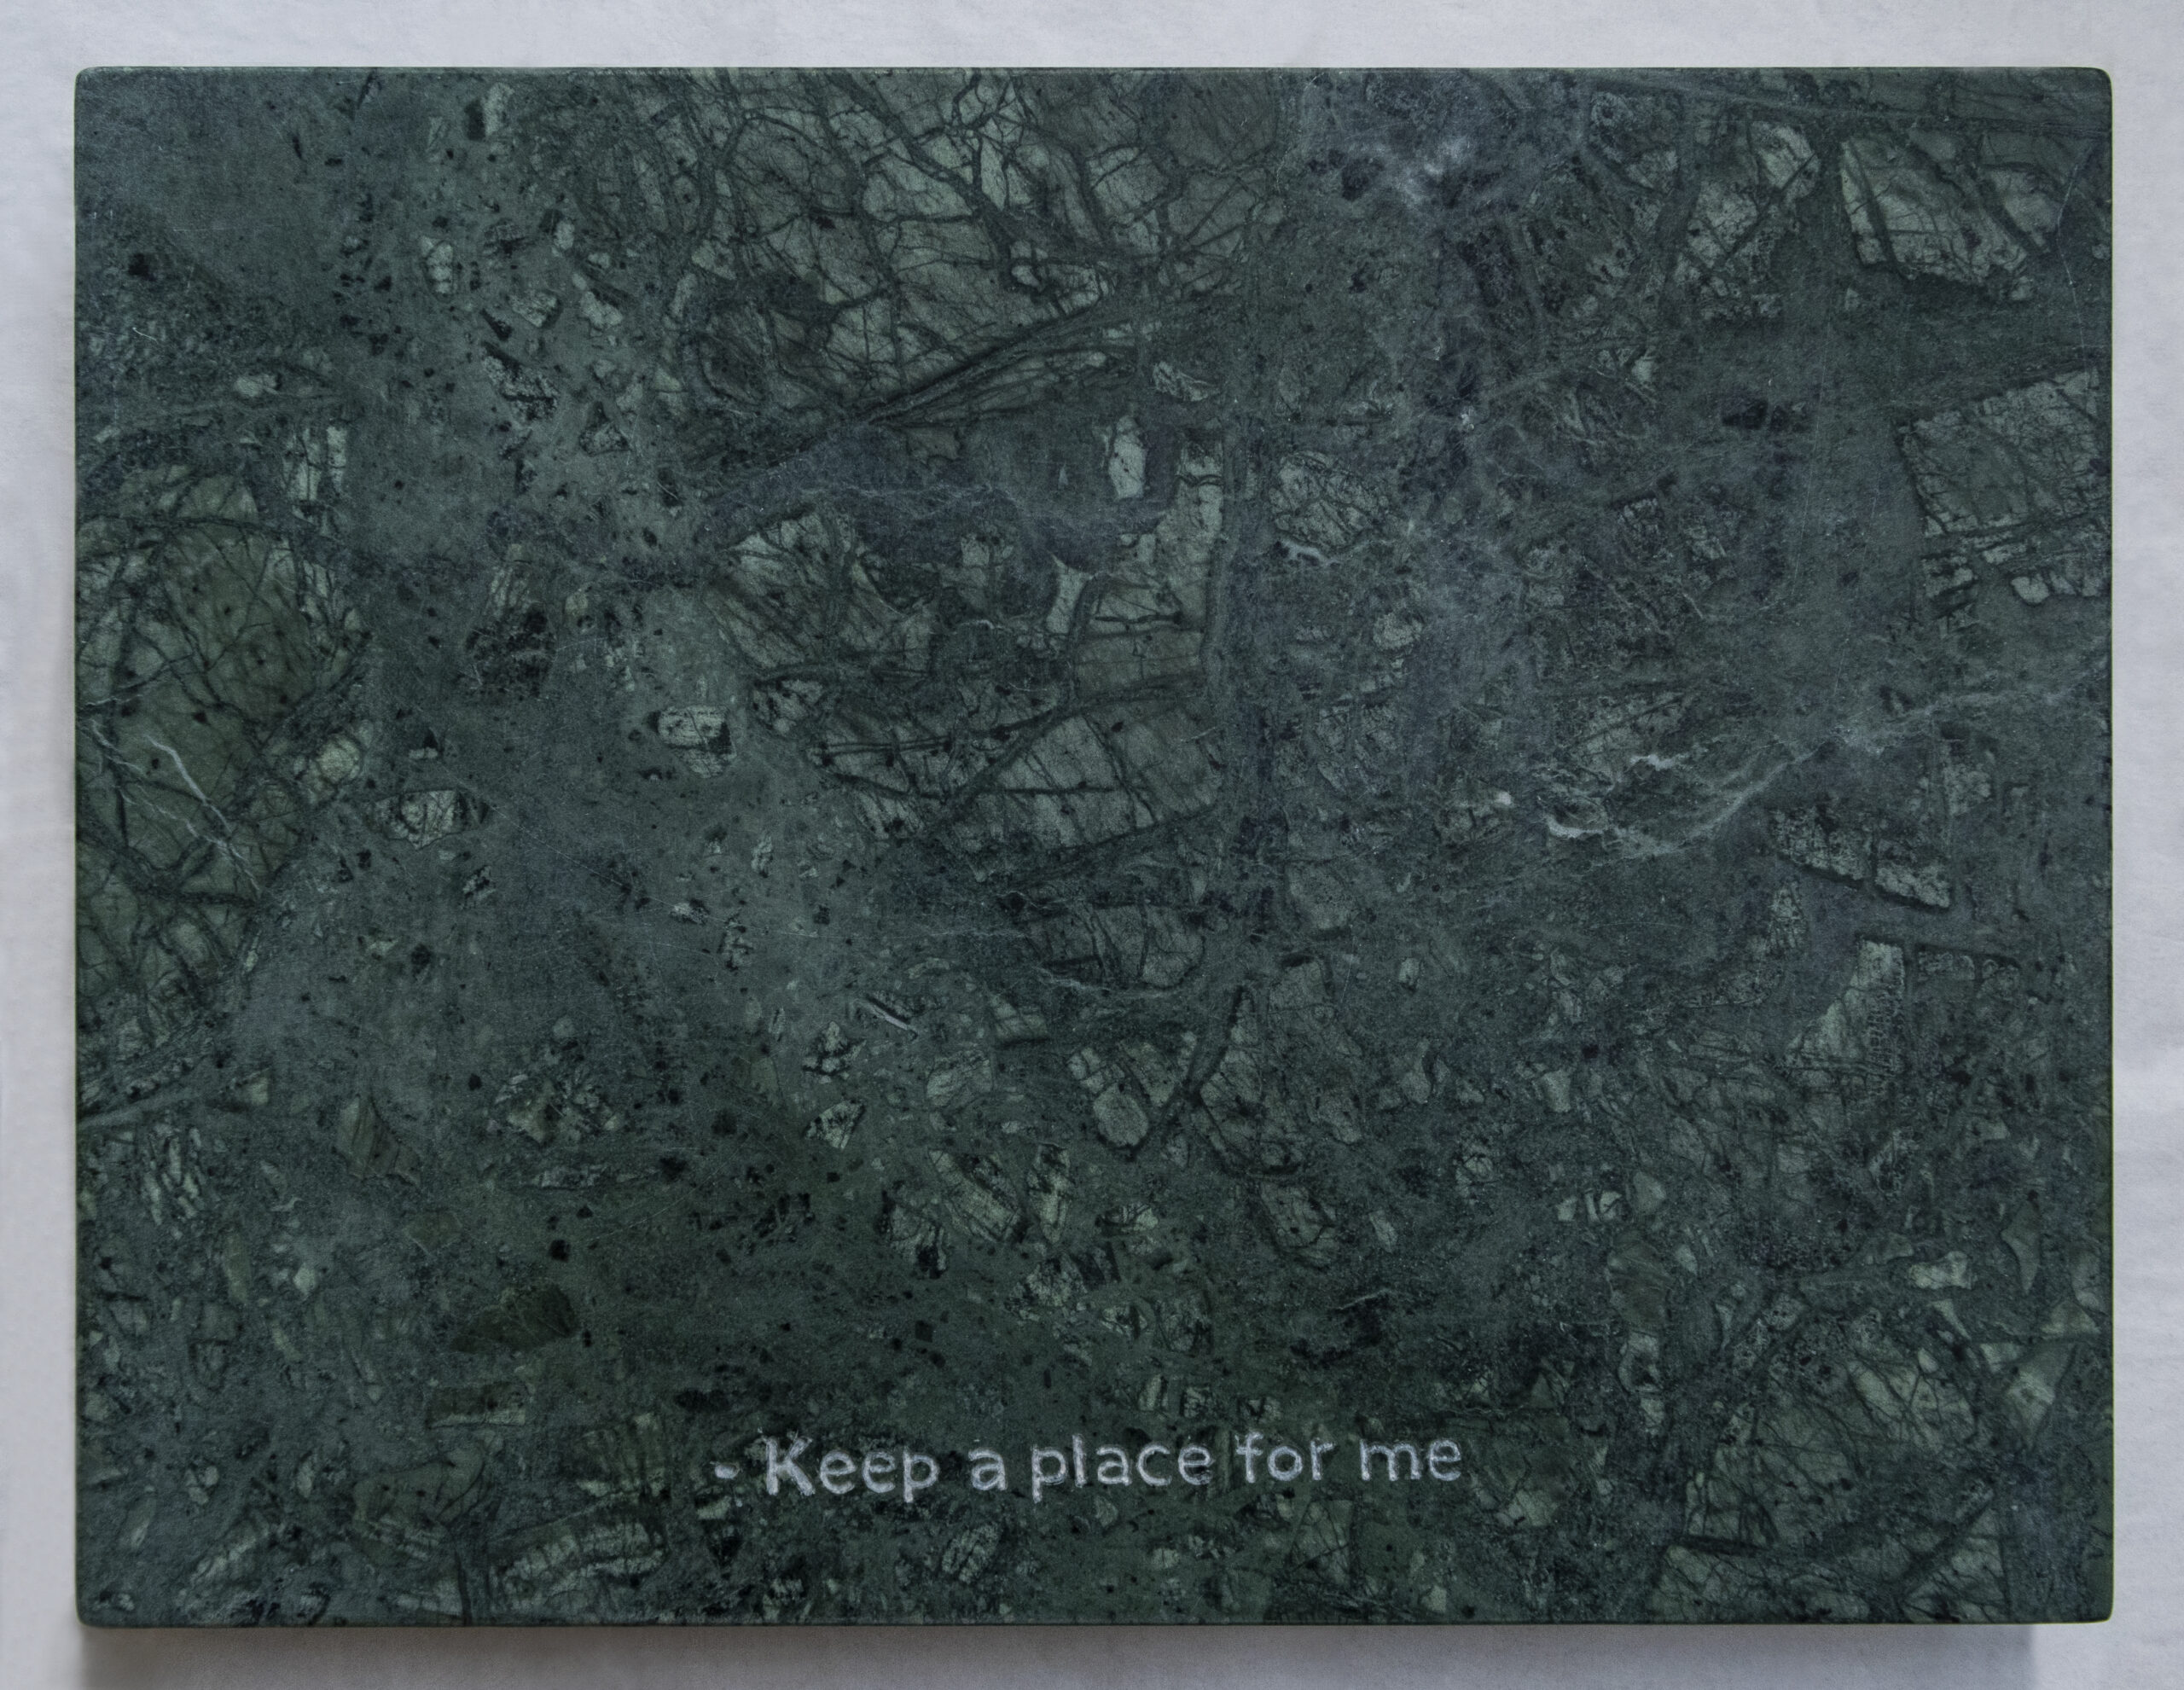 Guatemala green marble, 2020 - 38 x 29 cm - Marco Curiale - courtesy of the artist